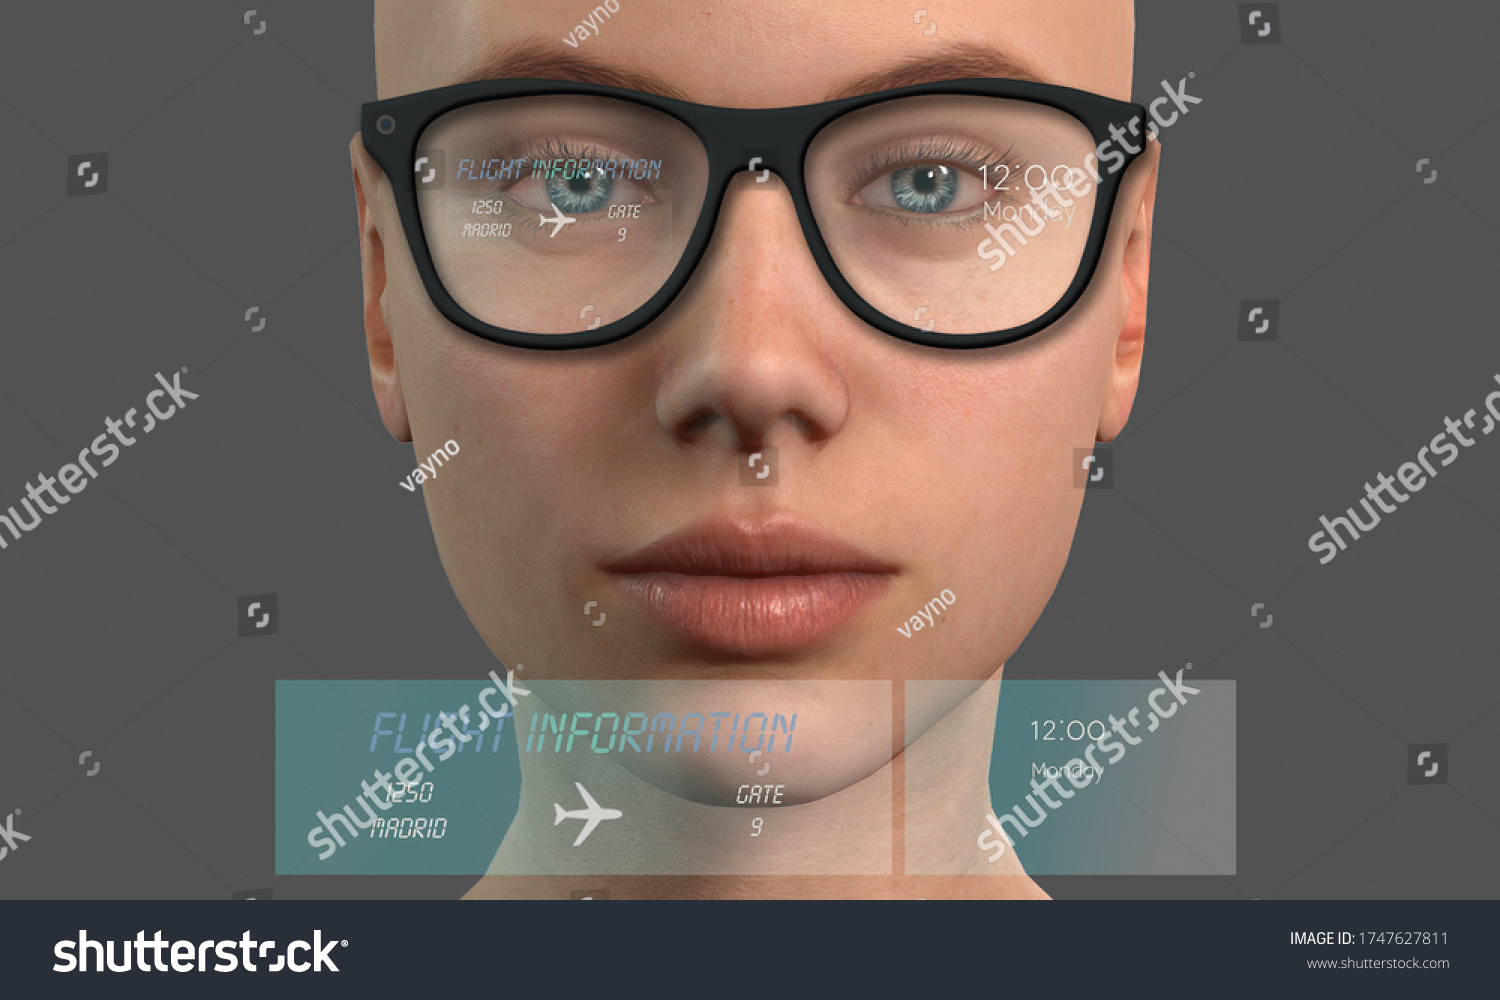 New modern smart glasses.Smart glasses and augmented reality concept. Woman wearing modern glasses with futuristic screen. Virtual technology.  3d illustration .